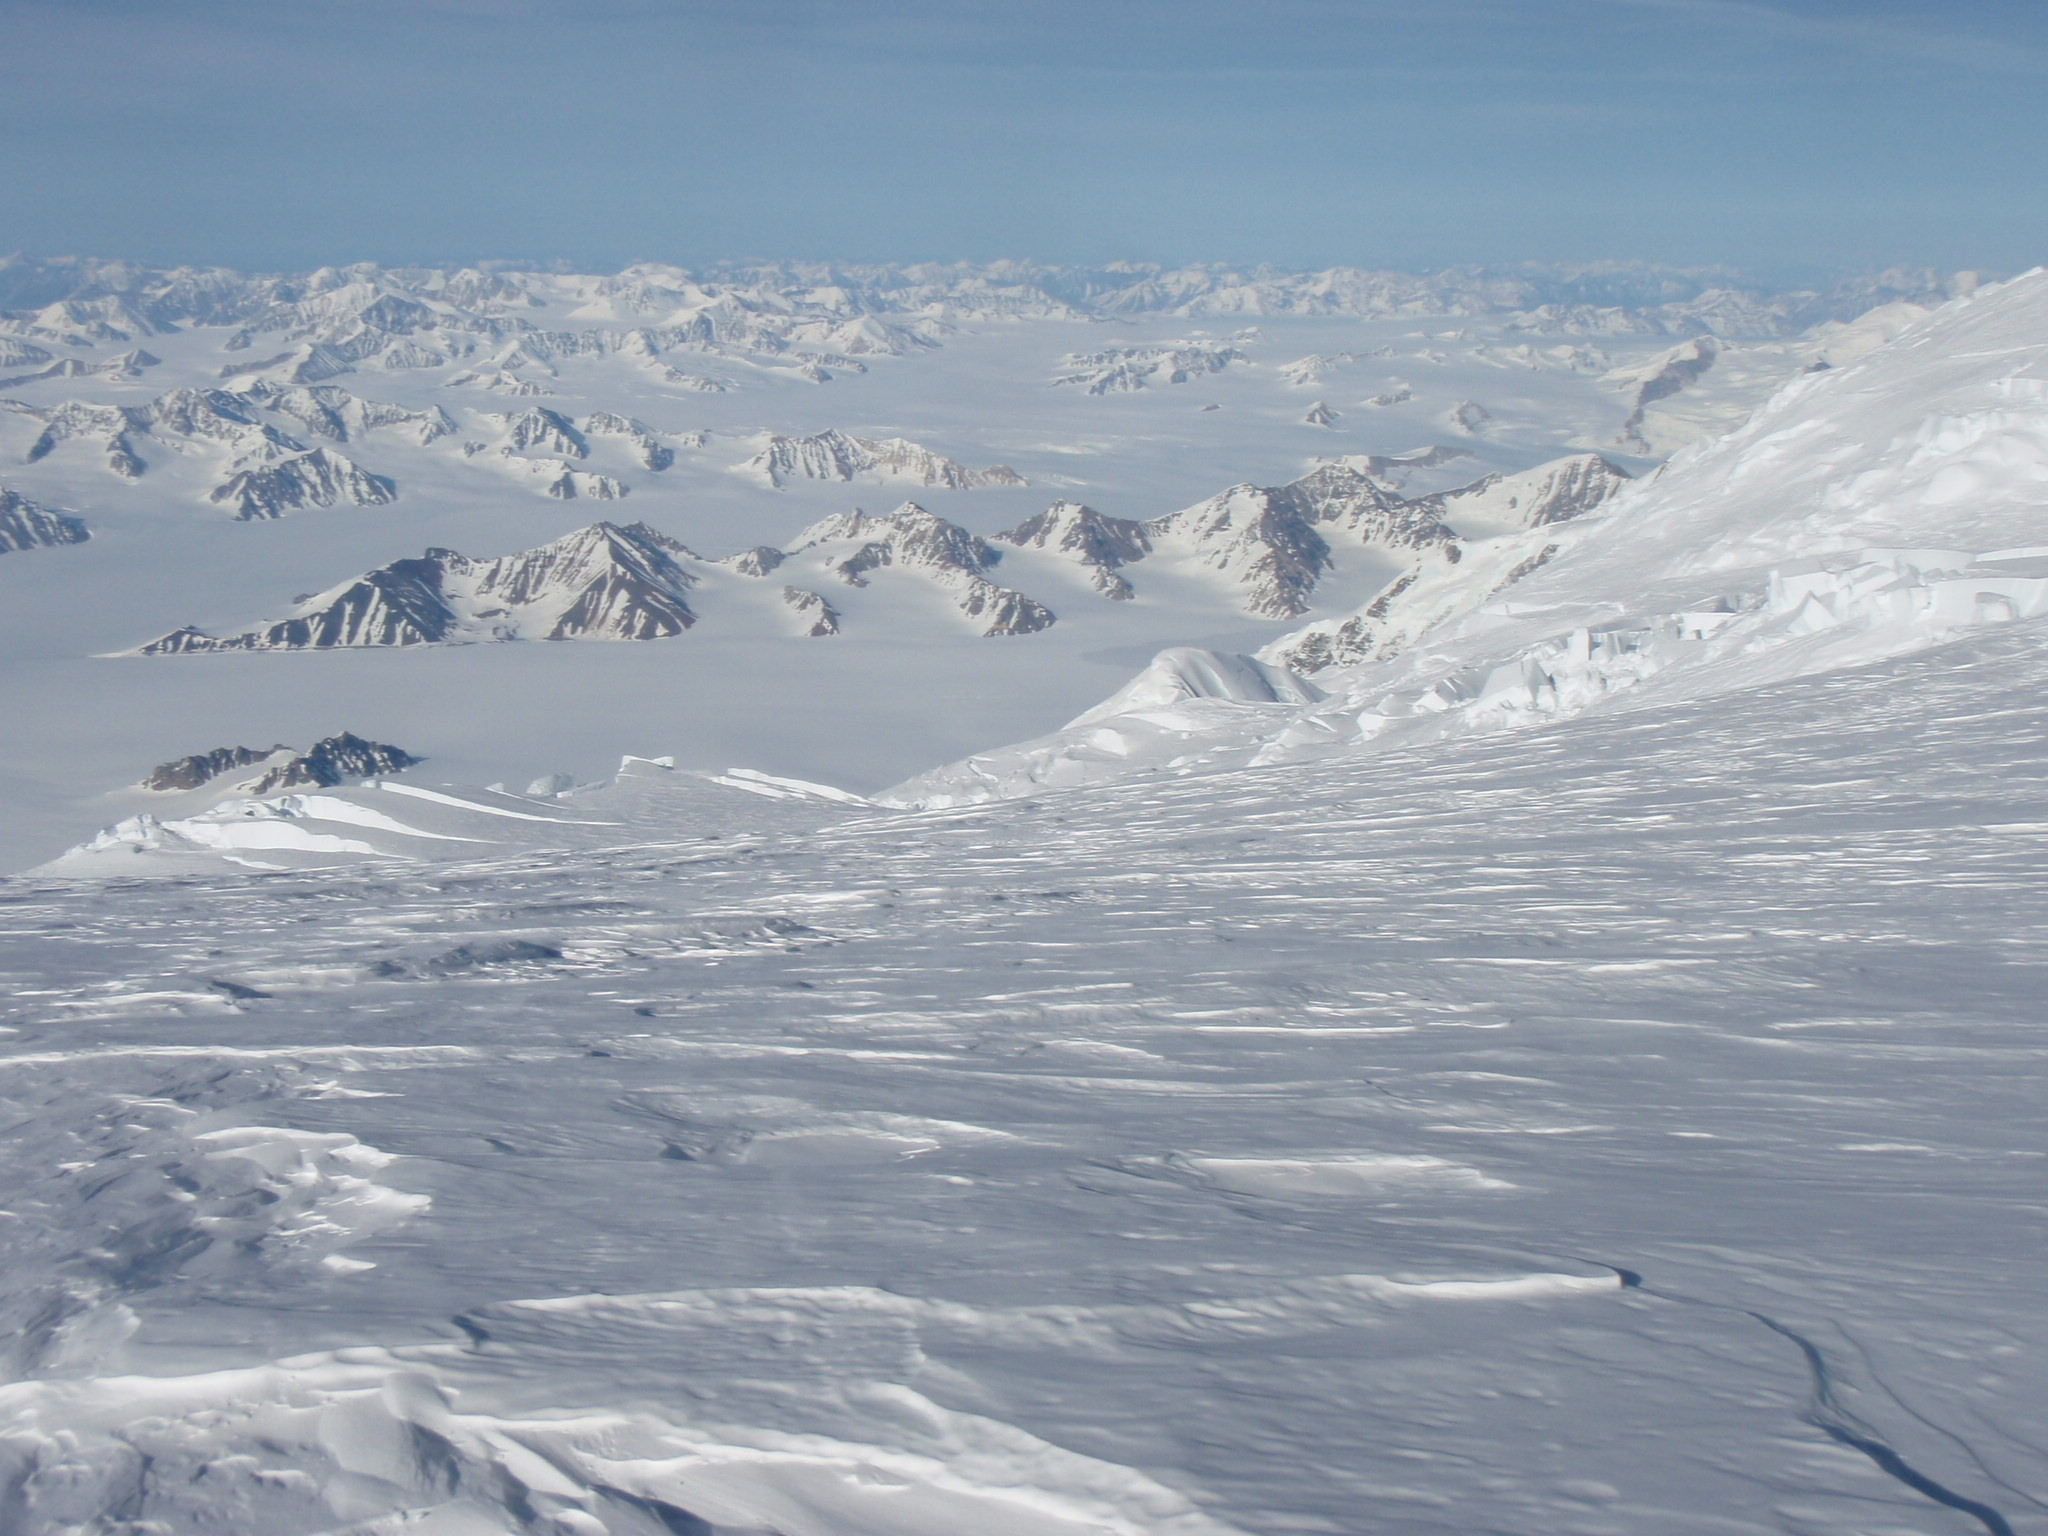 The Kluane Icefields from high up on Mount Logan